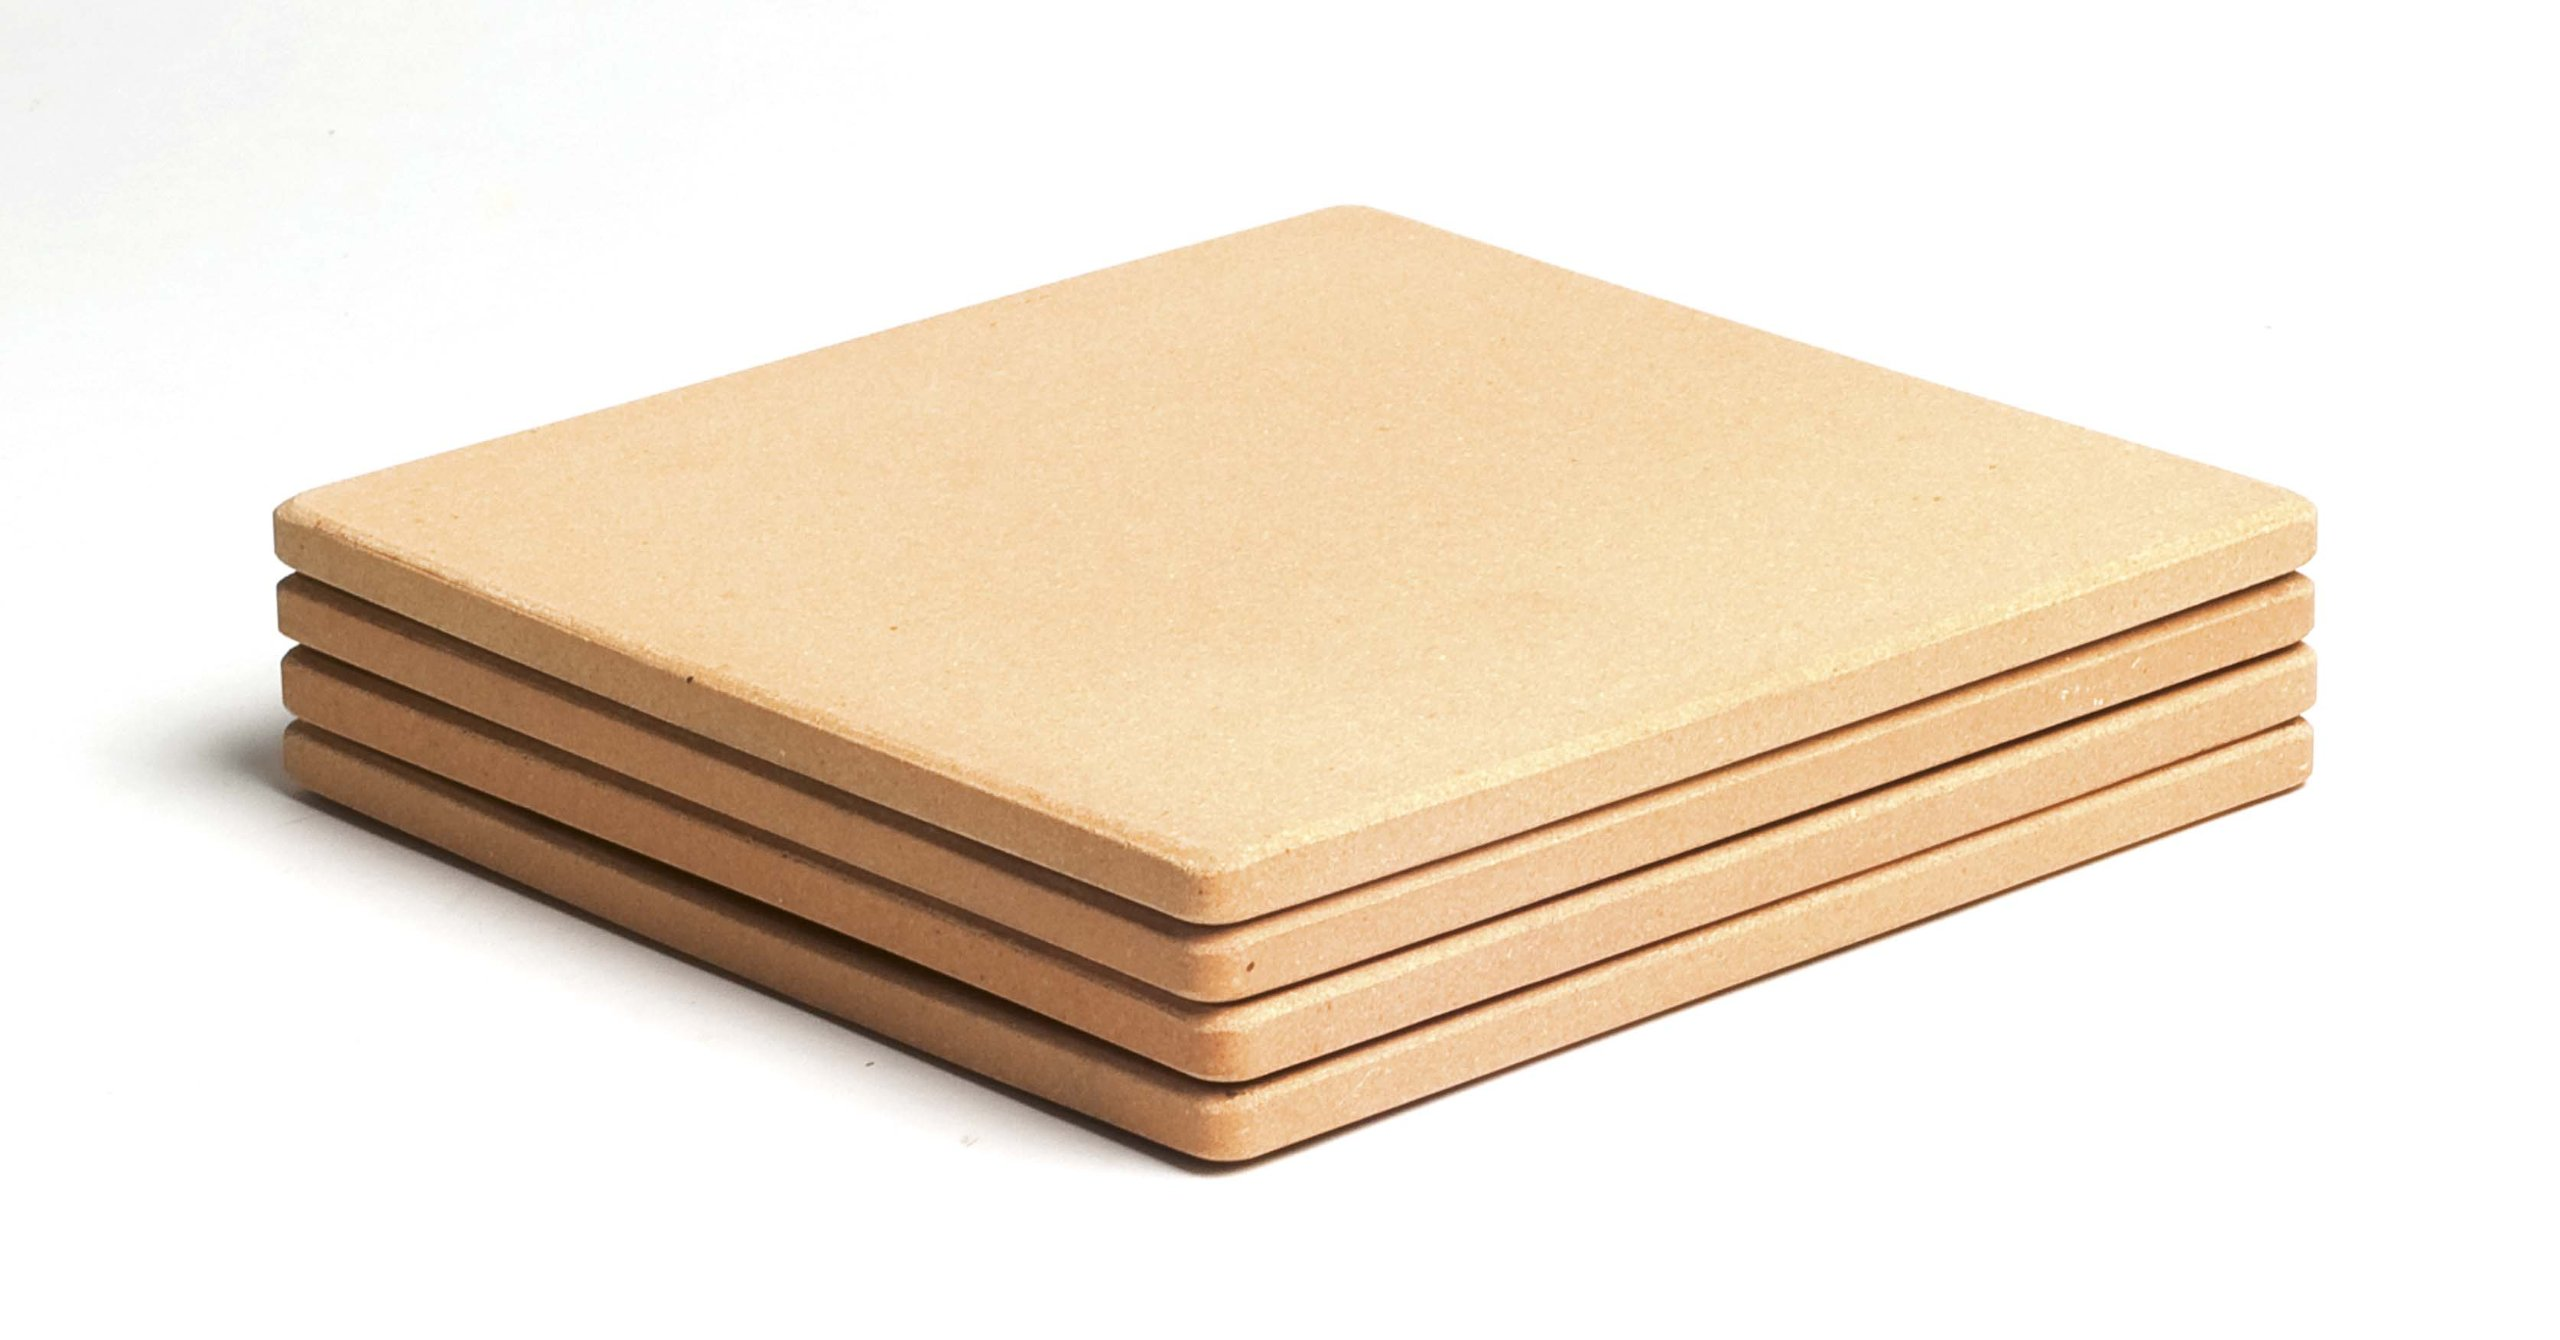 Pizzacraft PC0103 7.5'' Square ThermaBond Mini Baking/Pizza Stones, Set of 4